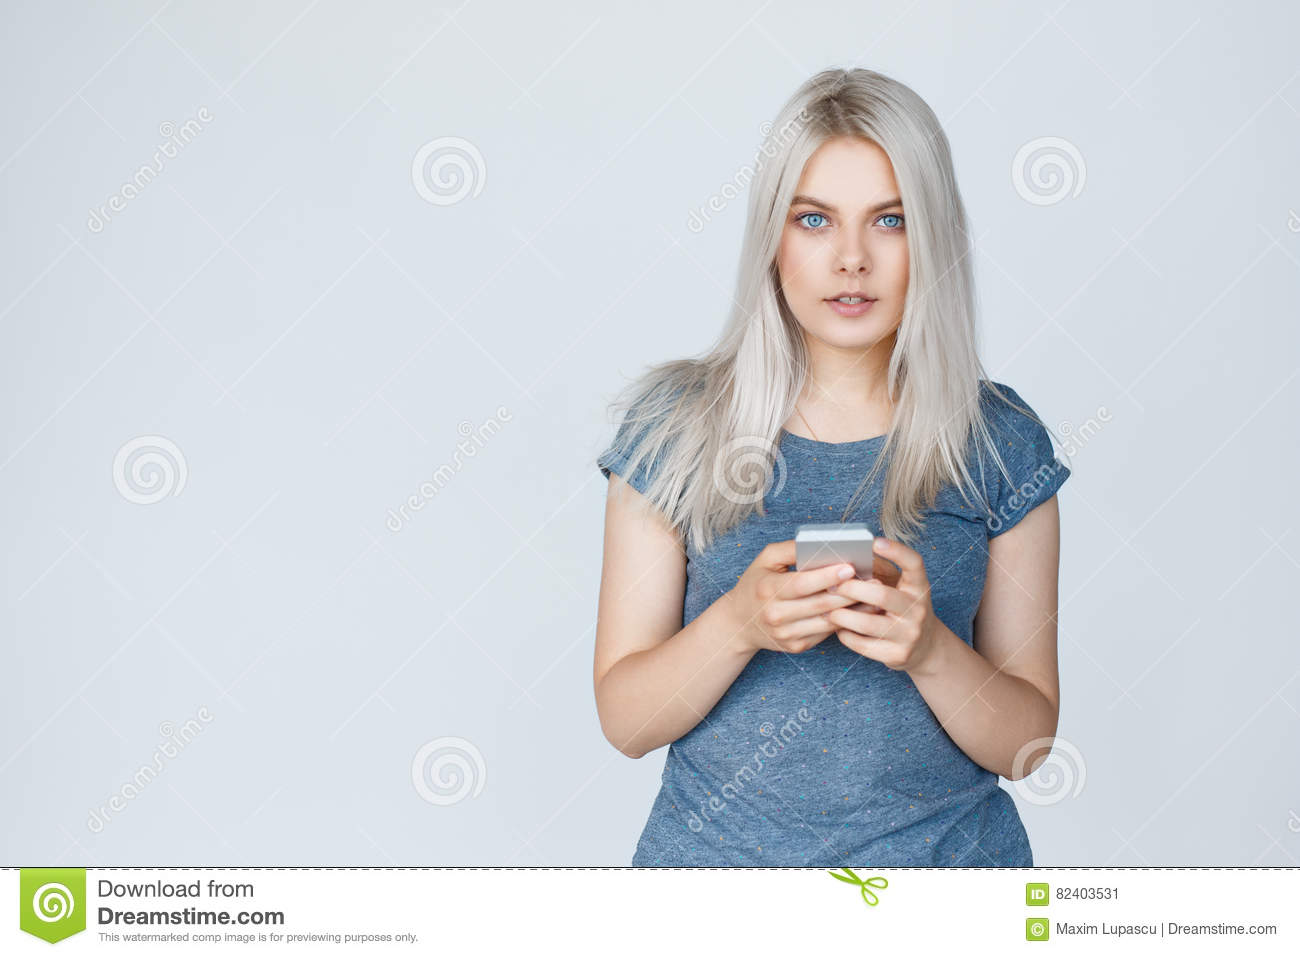 2e6431aa760b Young woman with blond hair typing on mobile phone, over grey background.  Student girl in t-shirt with copy space